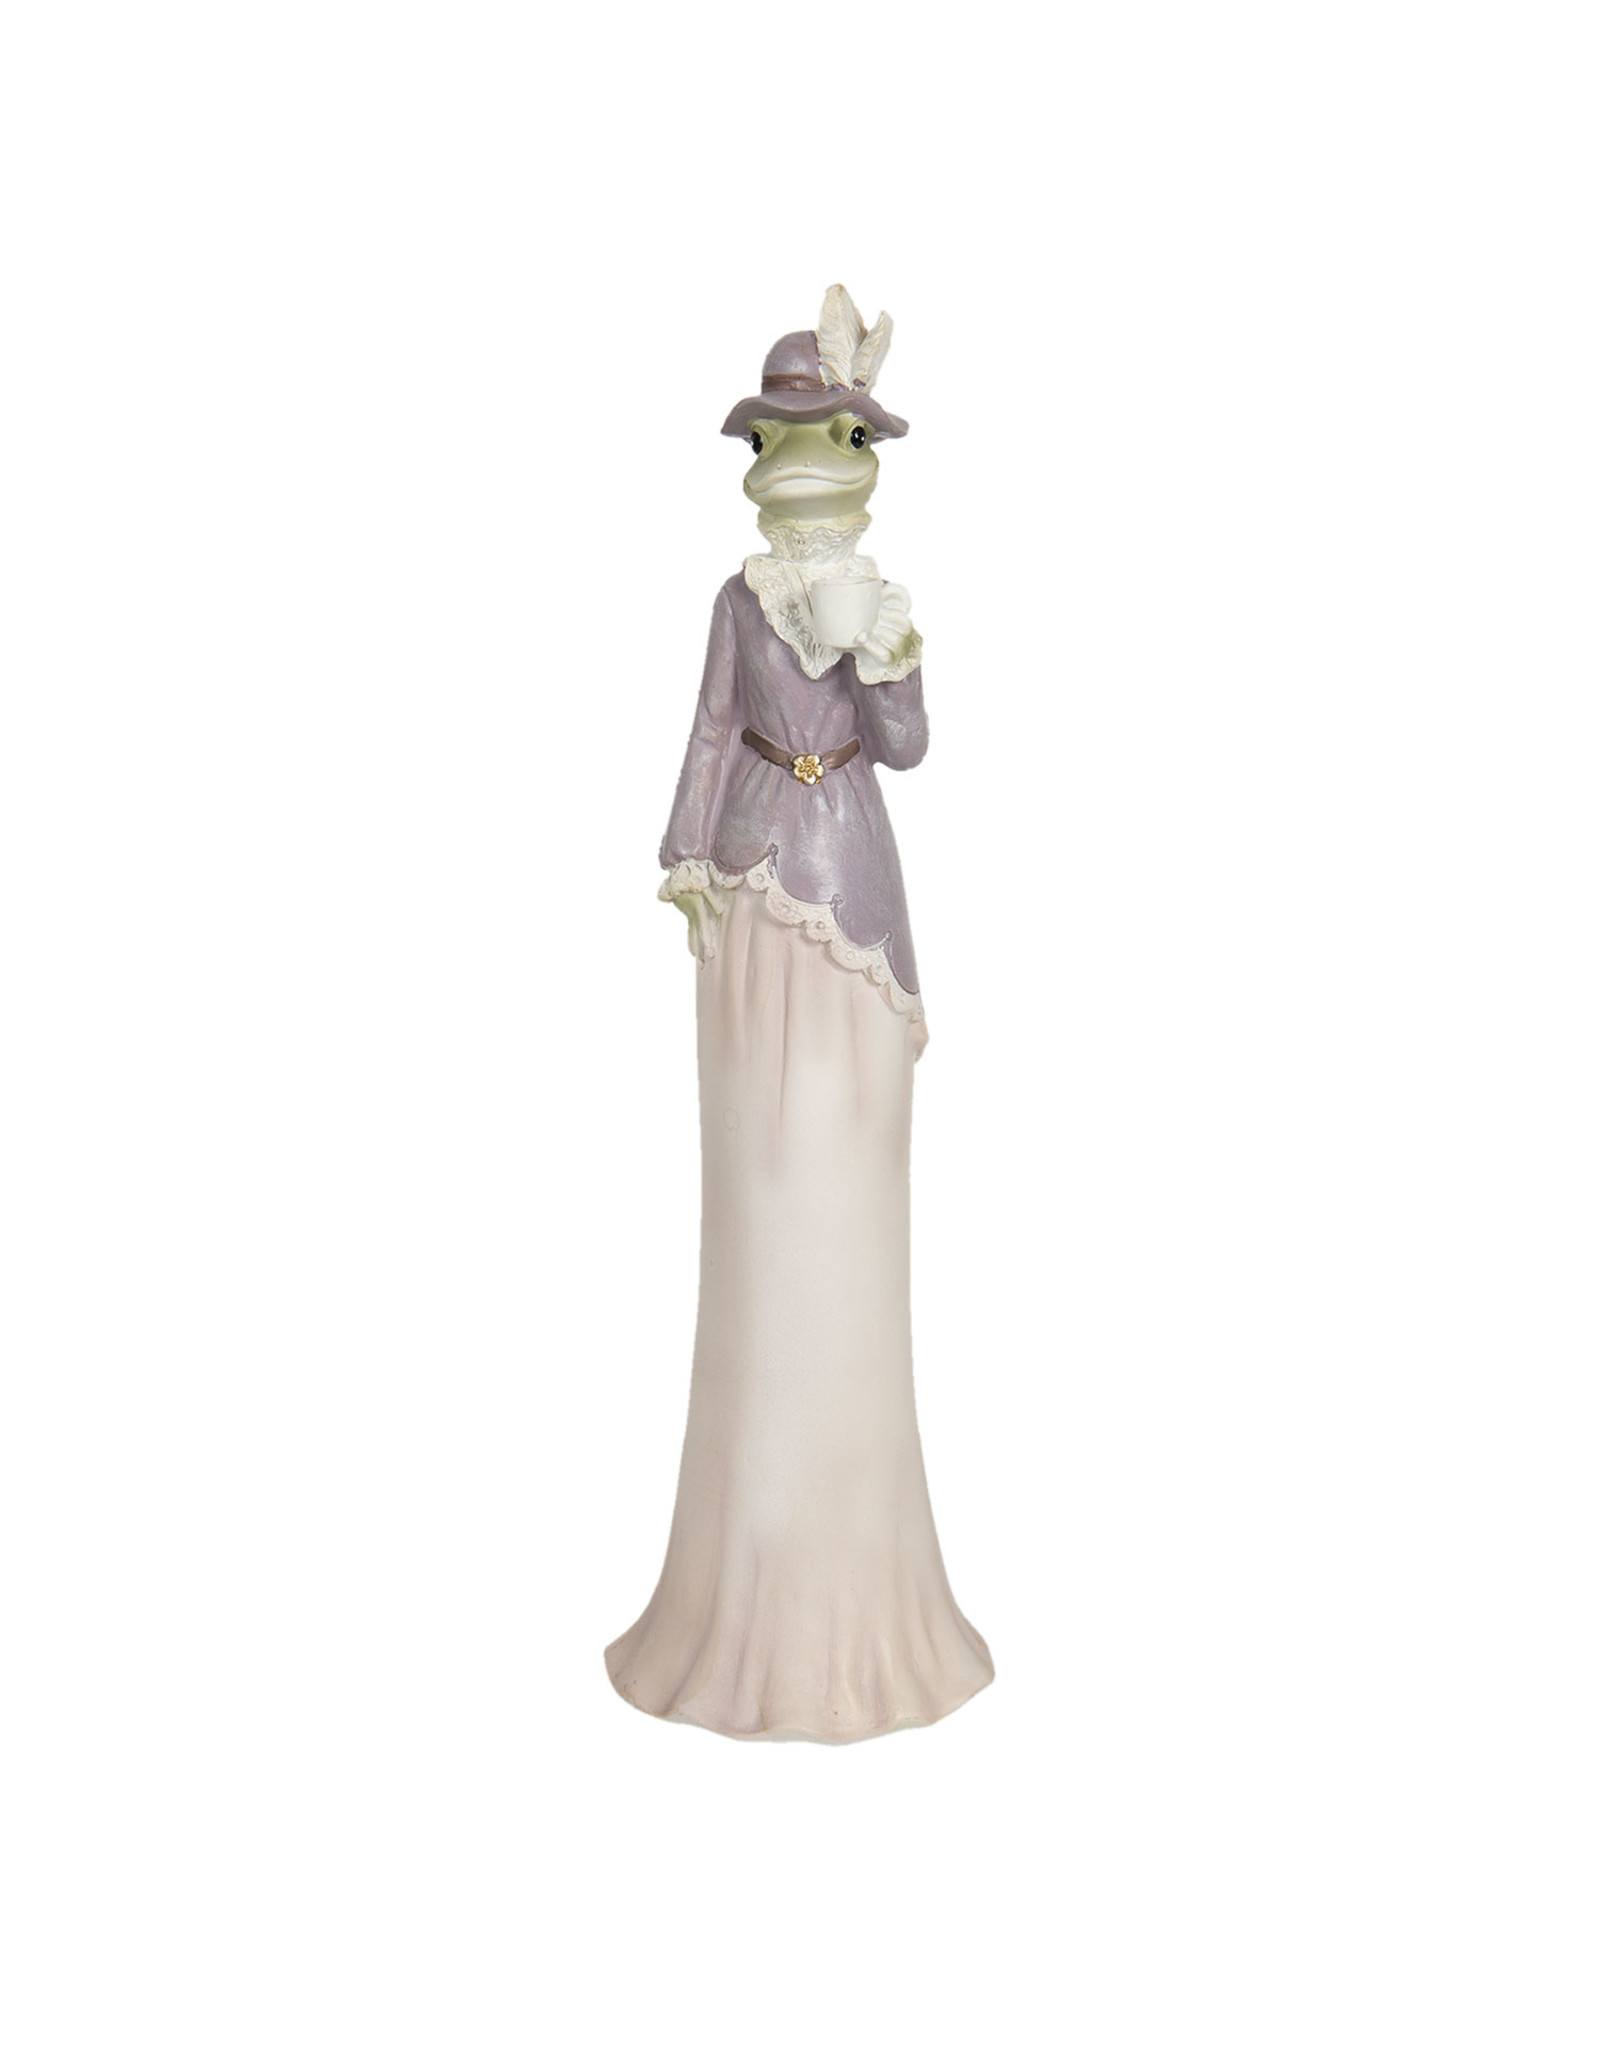 Trukado Giftware Figurines Collectables - Frog lady figurine 32cm